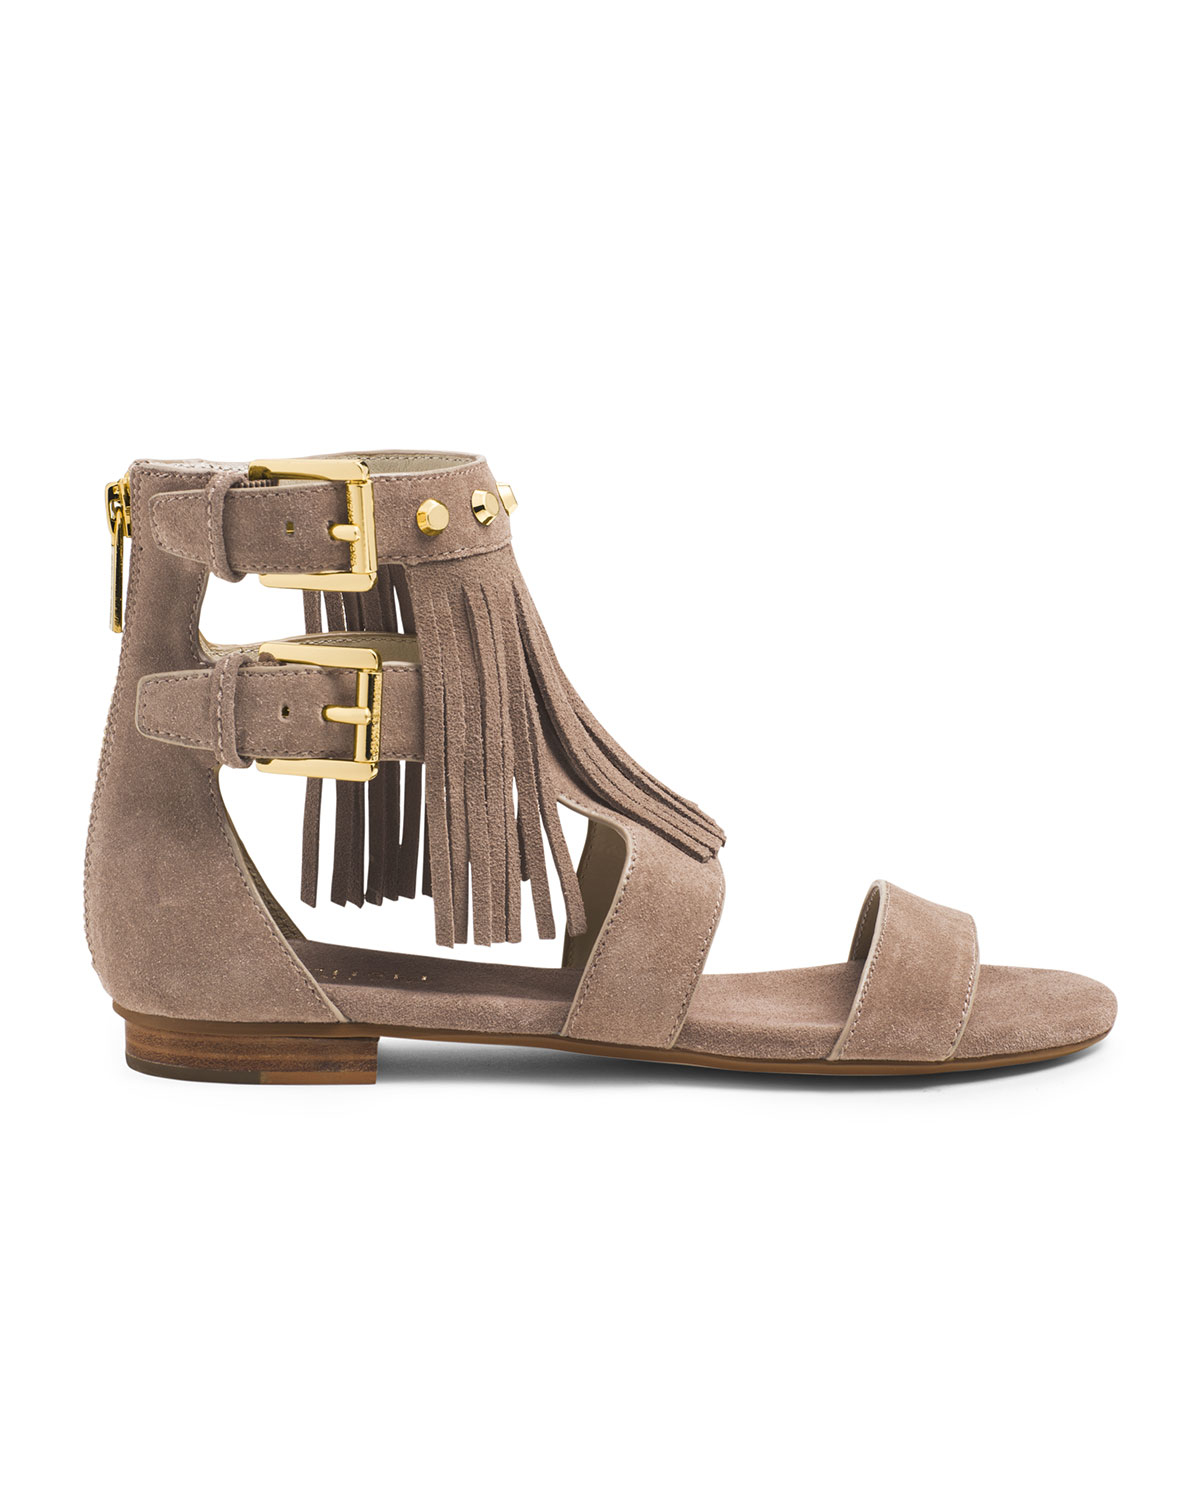 fringed sandals - Brown Michael Kors nuQA71hY